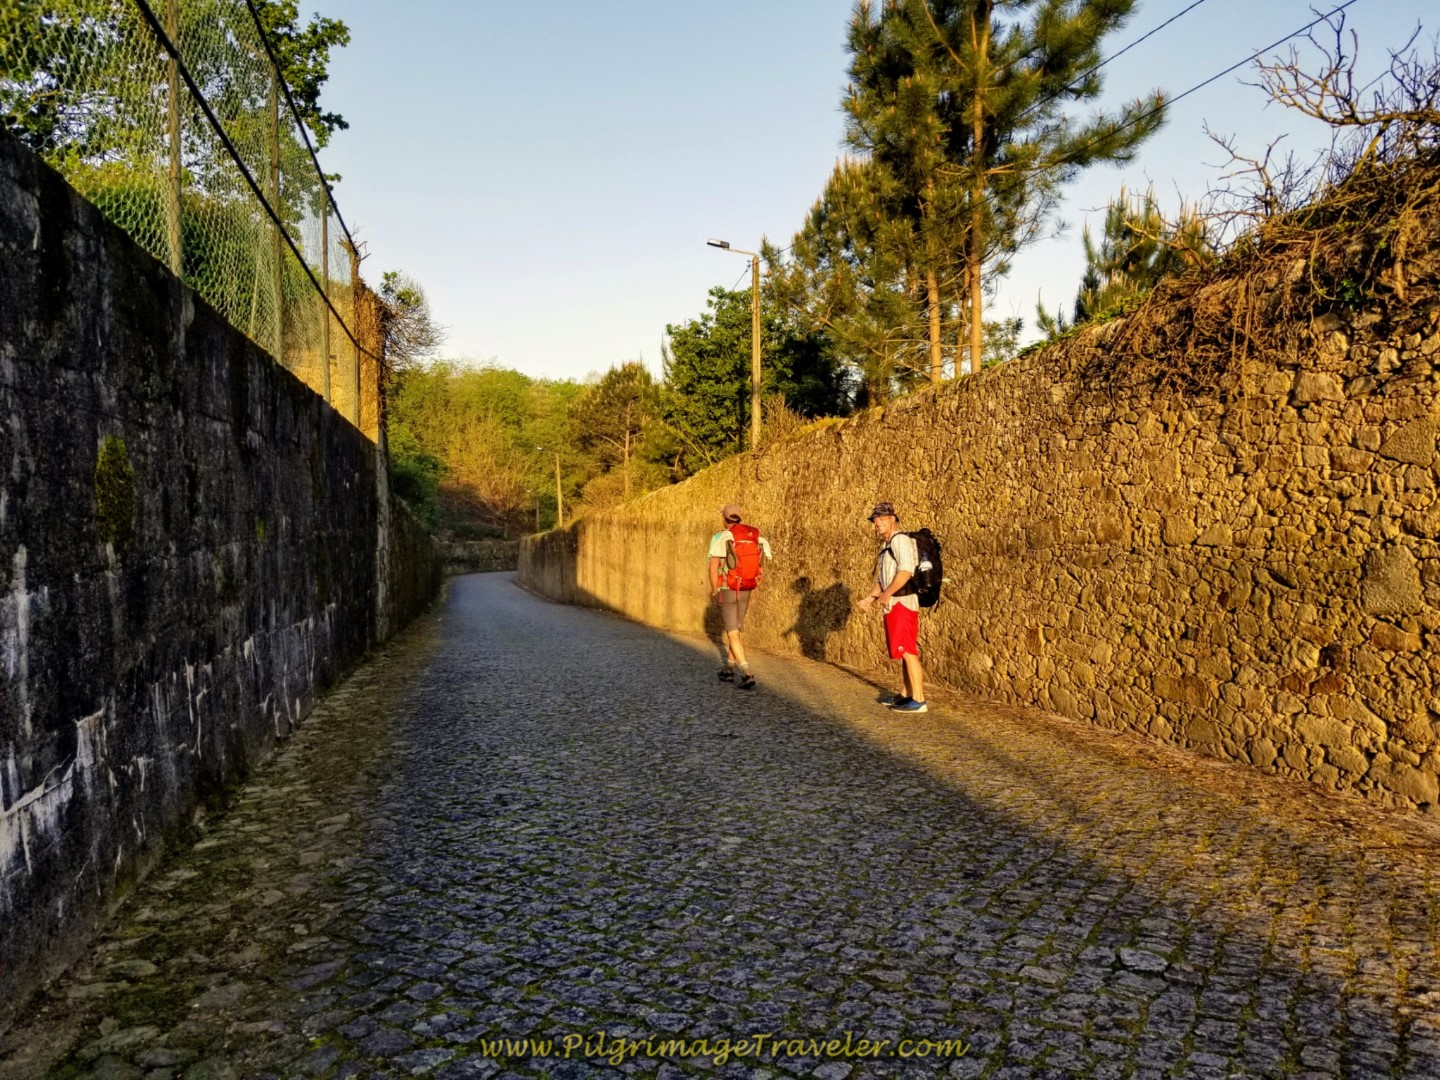 Rich and Matt Setting off on the cobblestone of the Rua de São Bento, in Vilarinho Portugal on the Central Route of the Camino Portugués